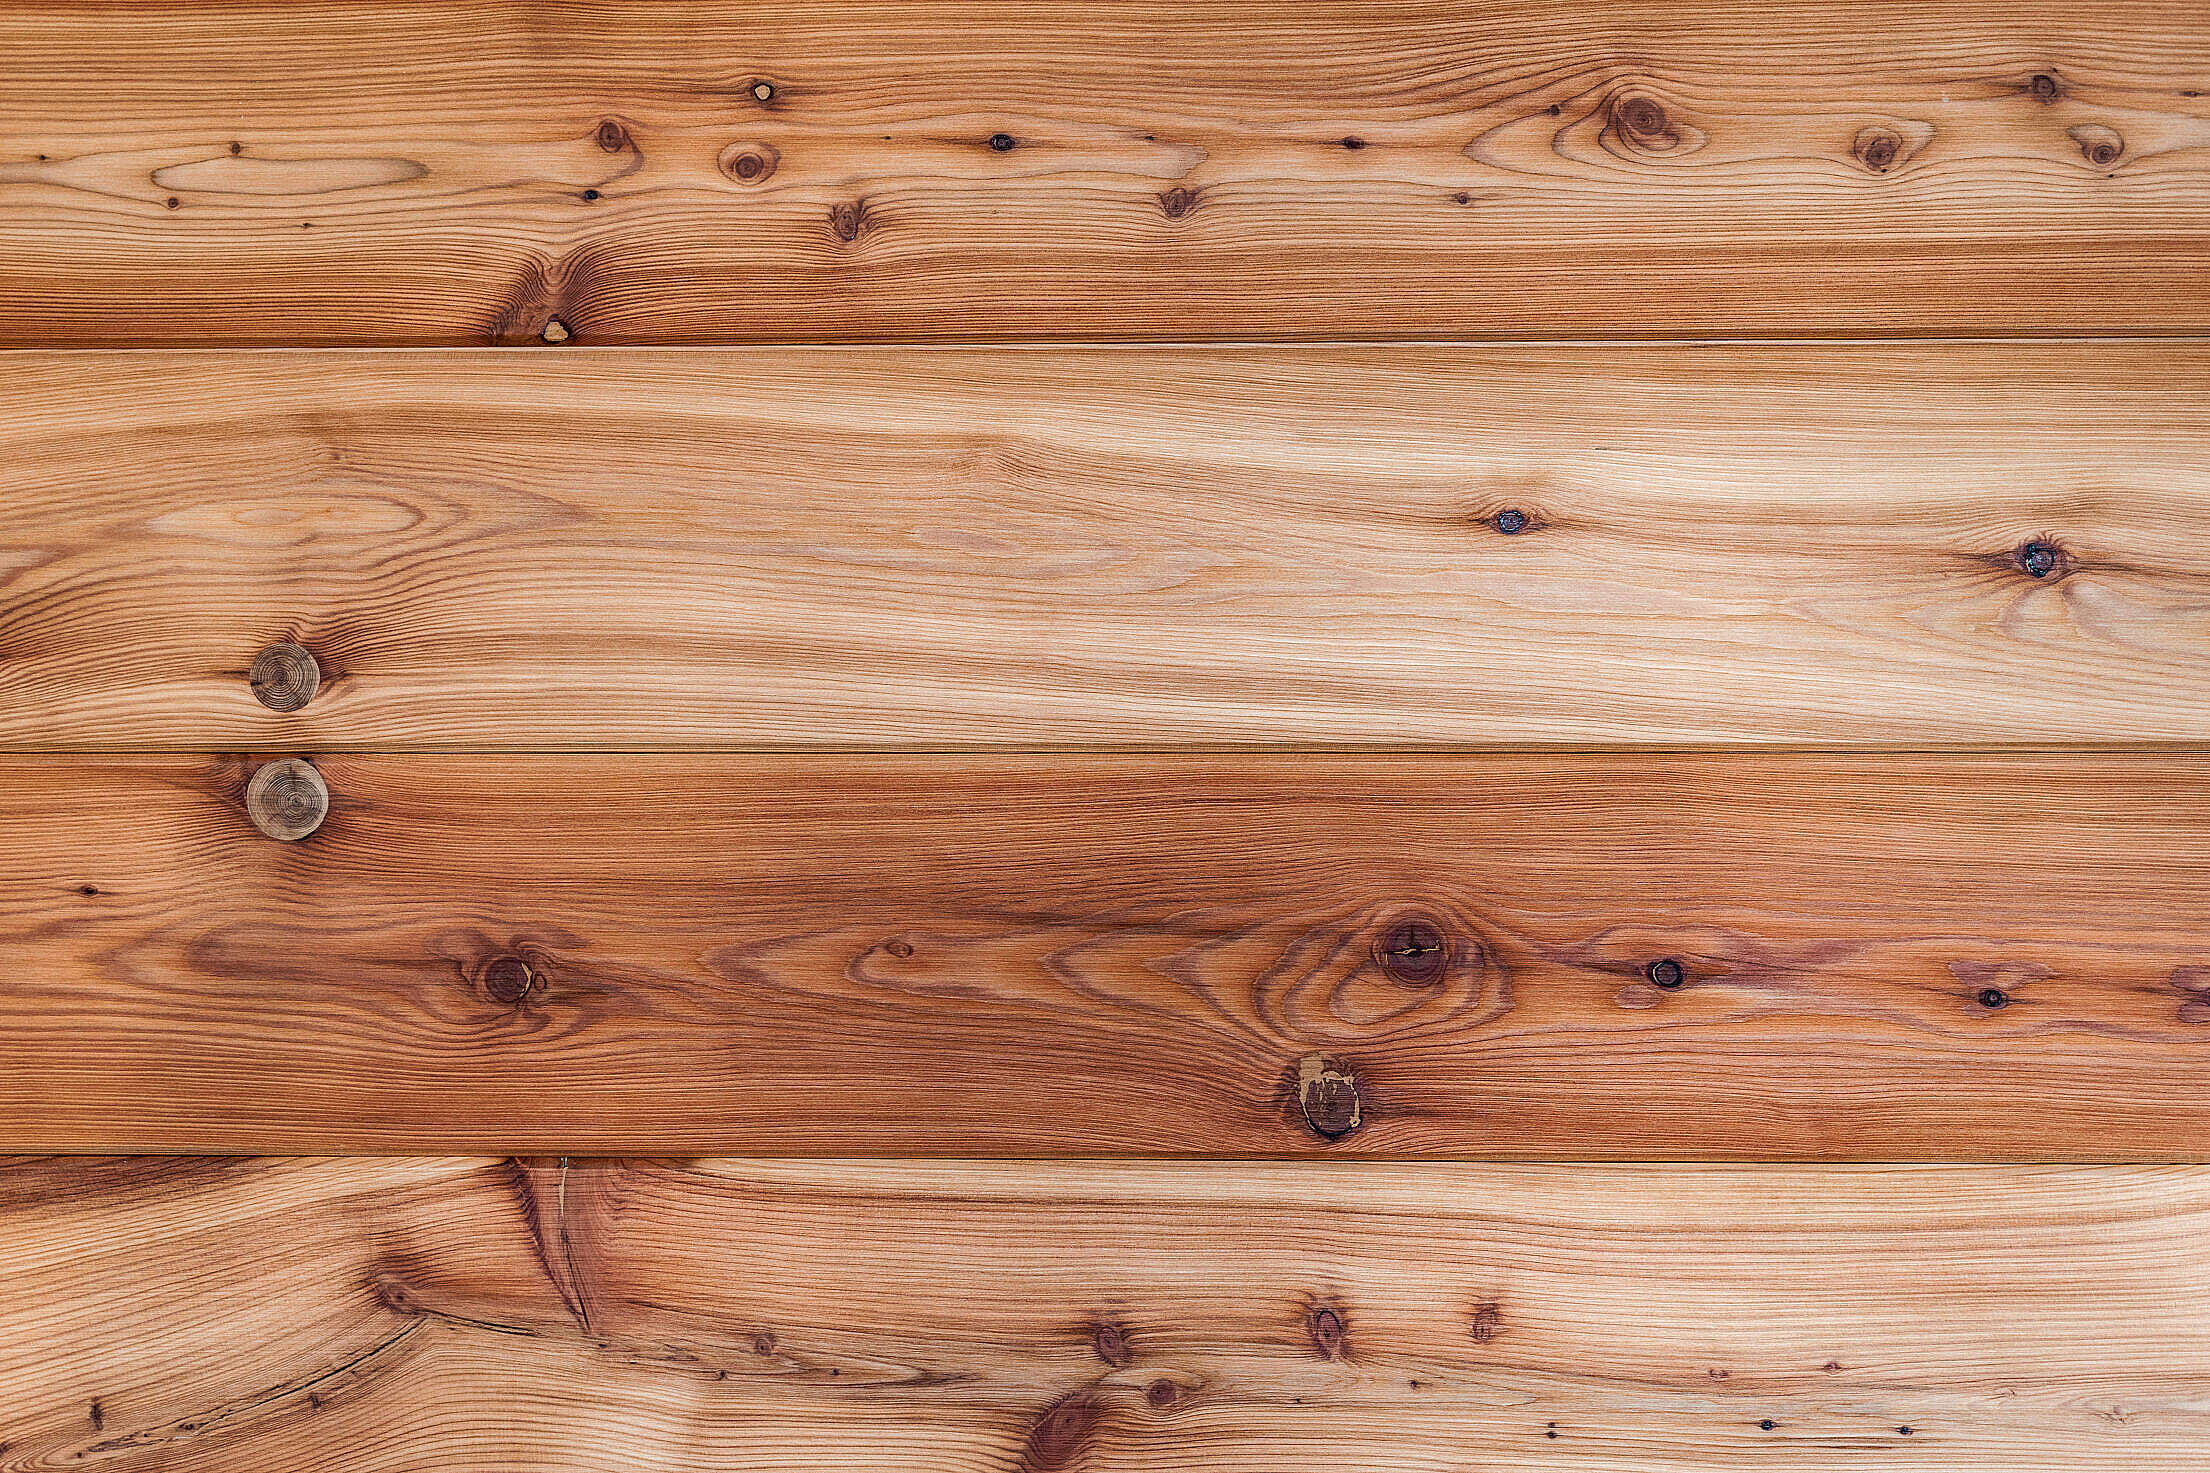 Wood Wall Decking Texture Free Stock Photo